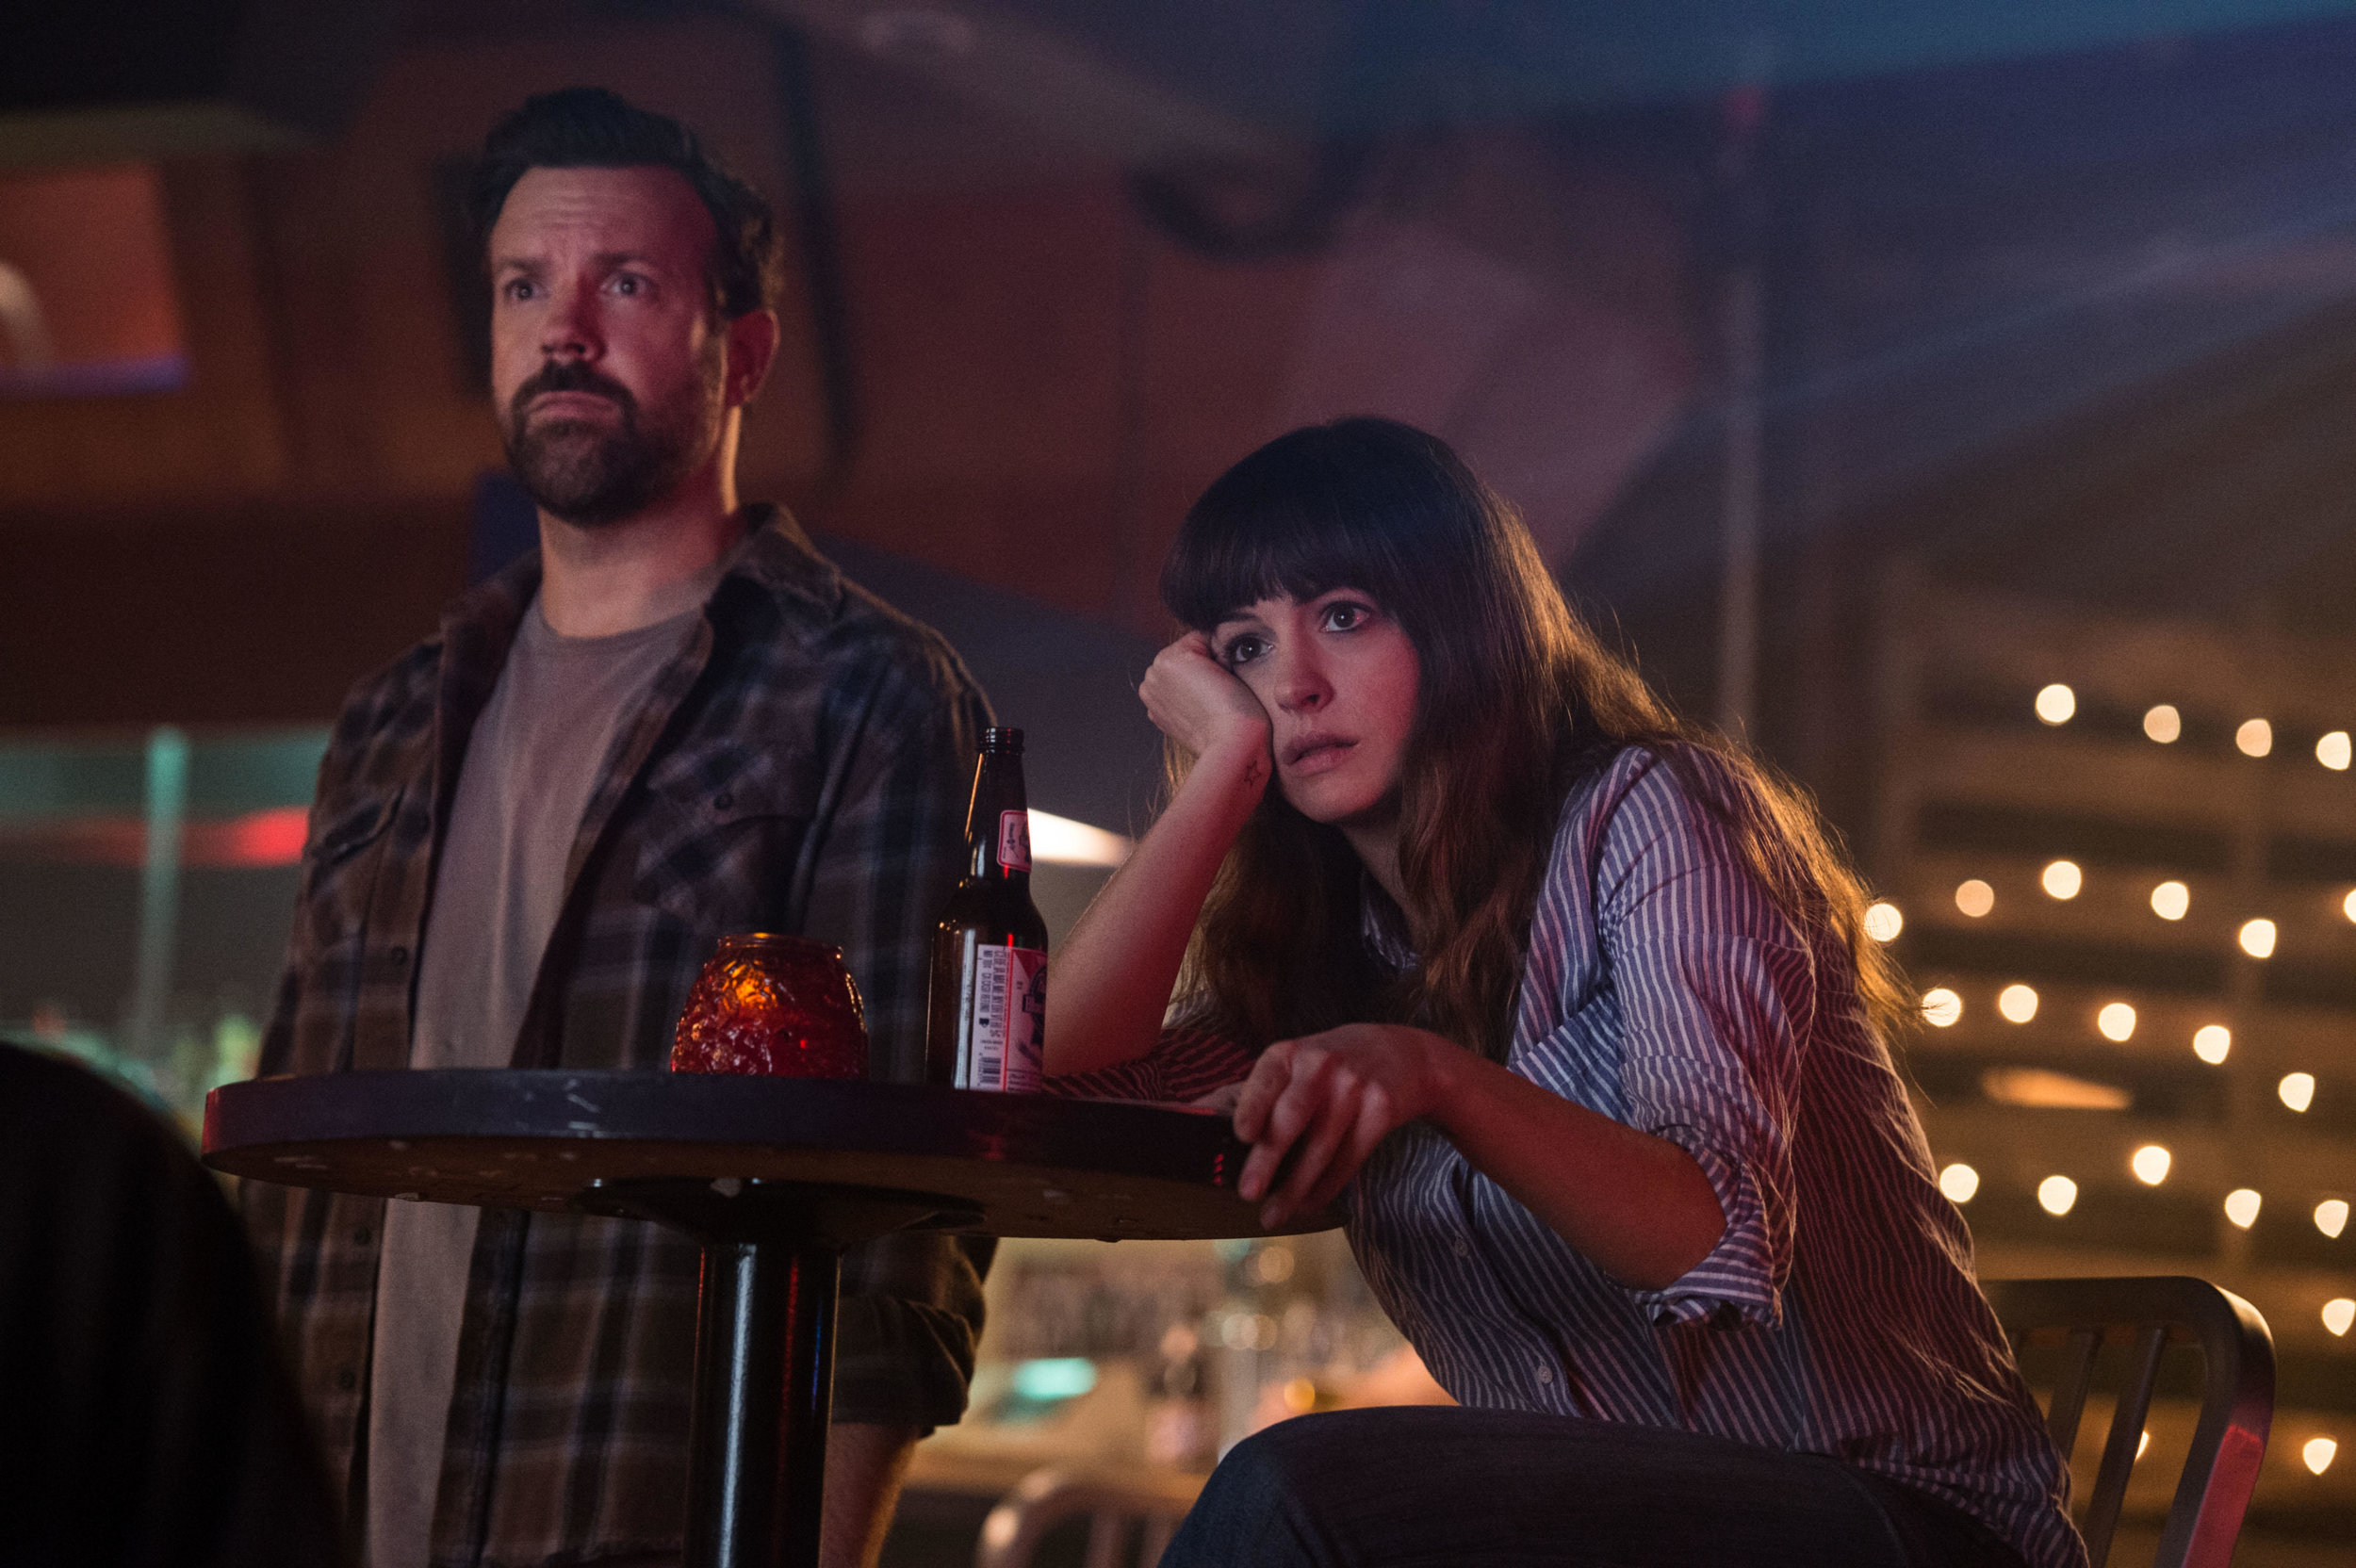 Colossal (2017) - Amanda and return guest, Brittney discuss the genre defying, Colossal. Brittney likens Anne Hathaway's character to Batman and Amanda doesn't understand the backlash against the actress.